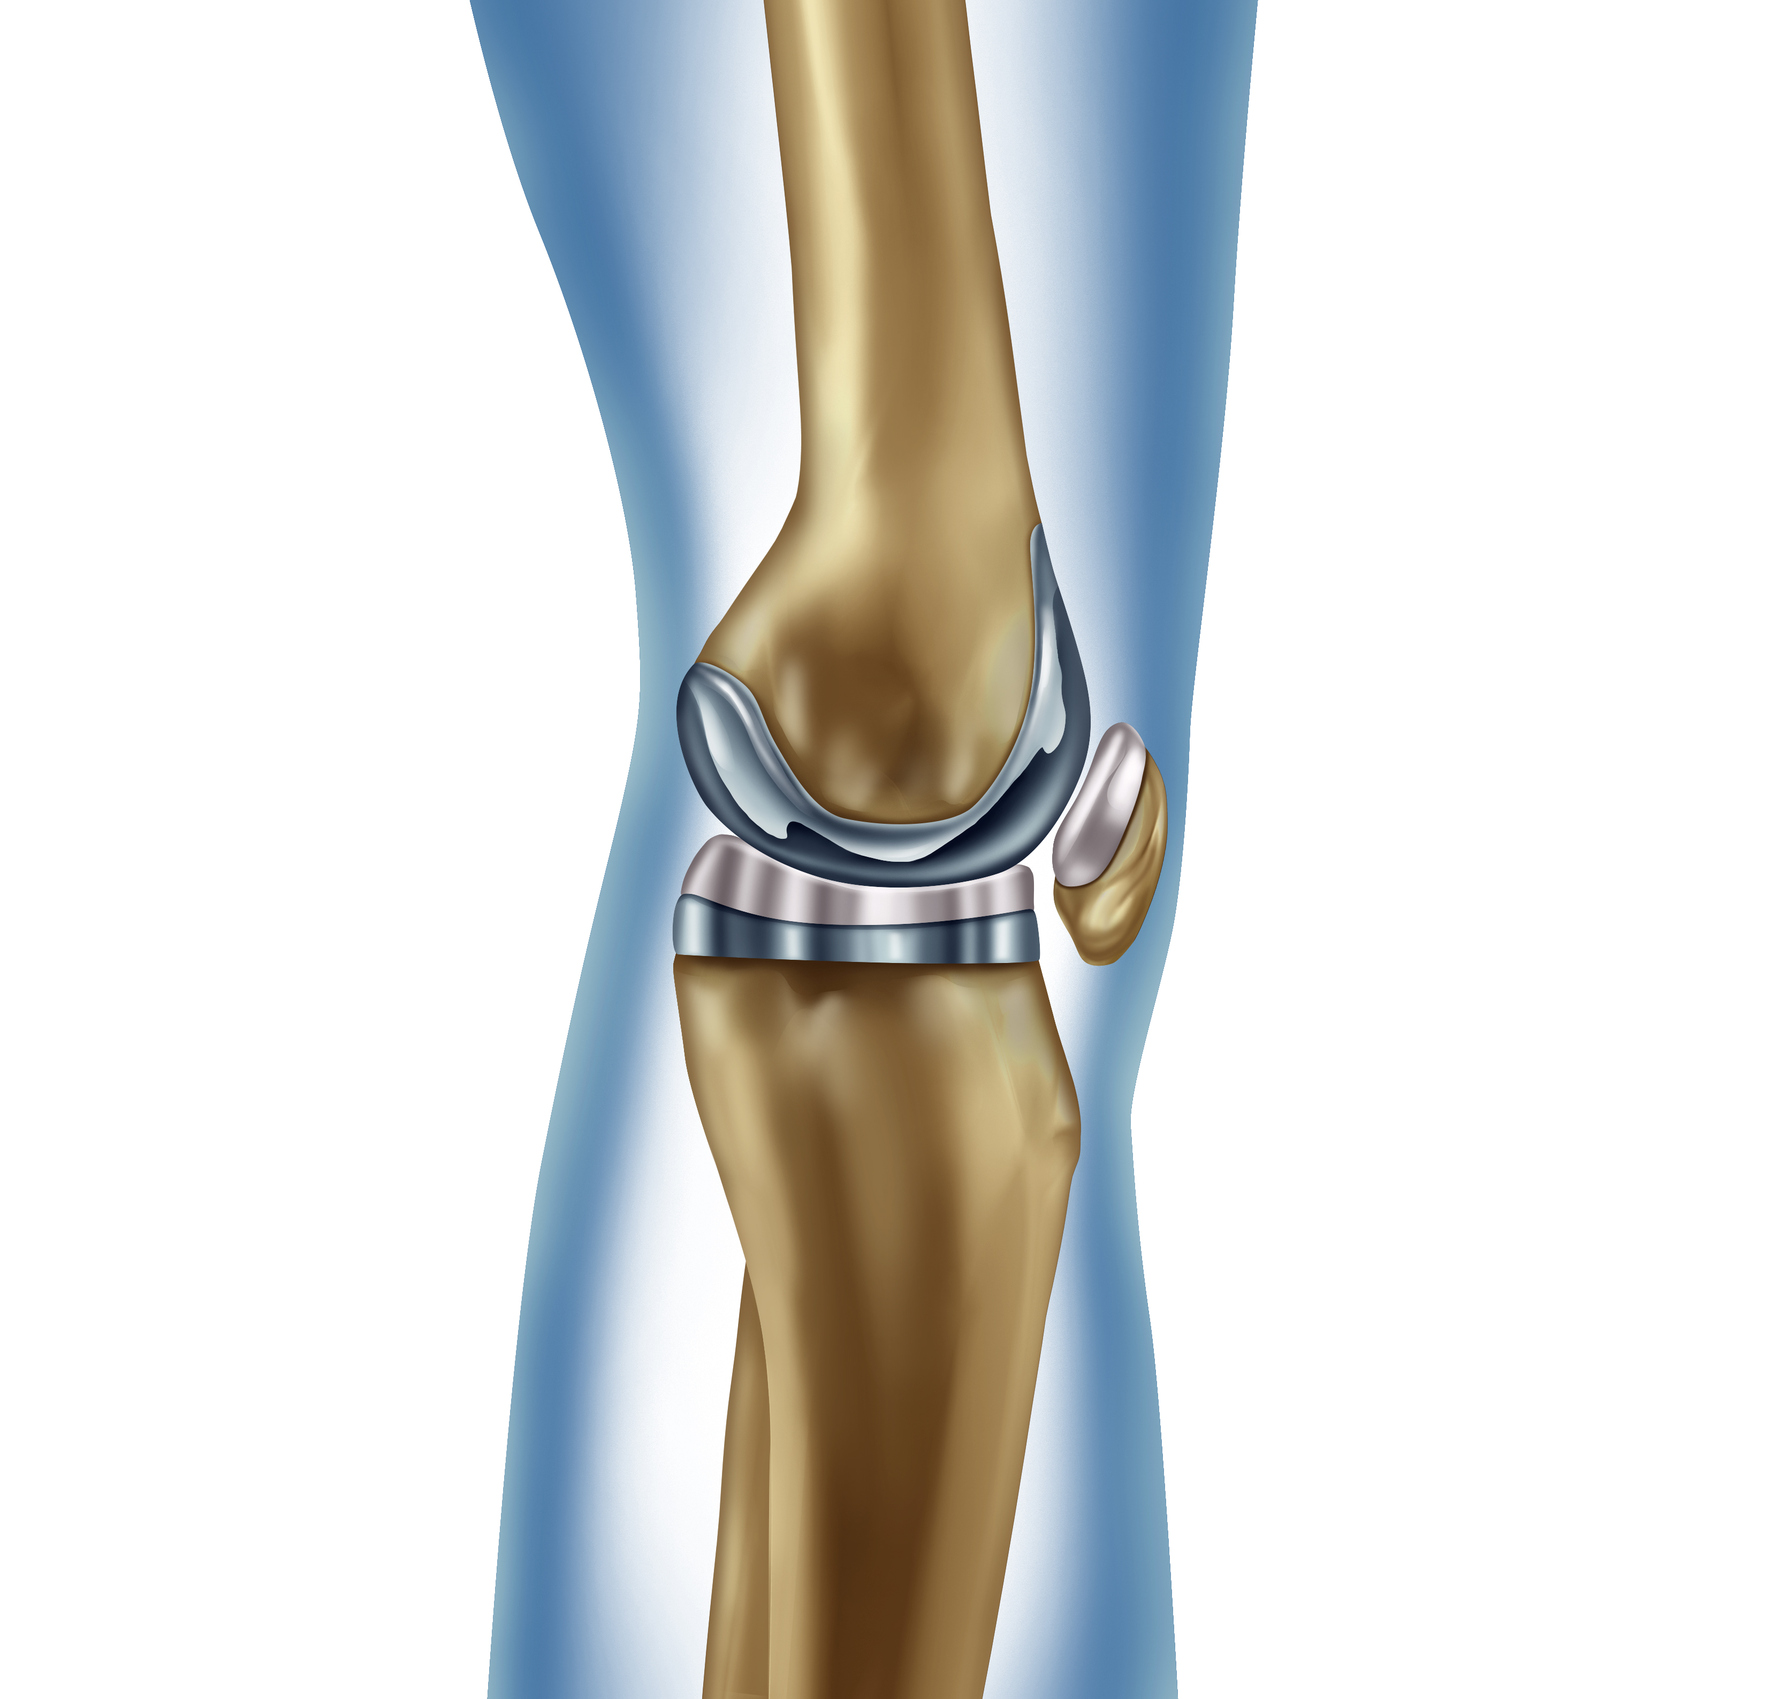 Do I Need a Full or Partial Knee Replacement Surgery